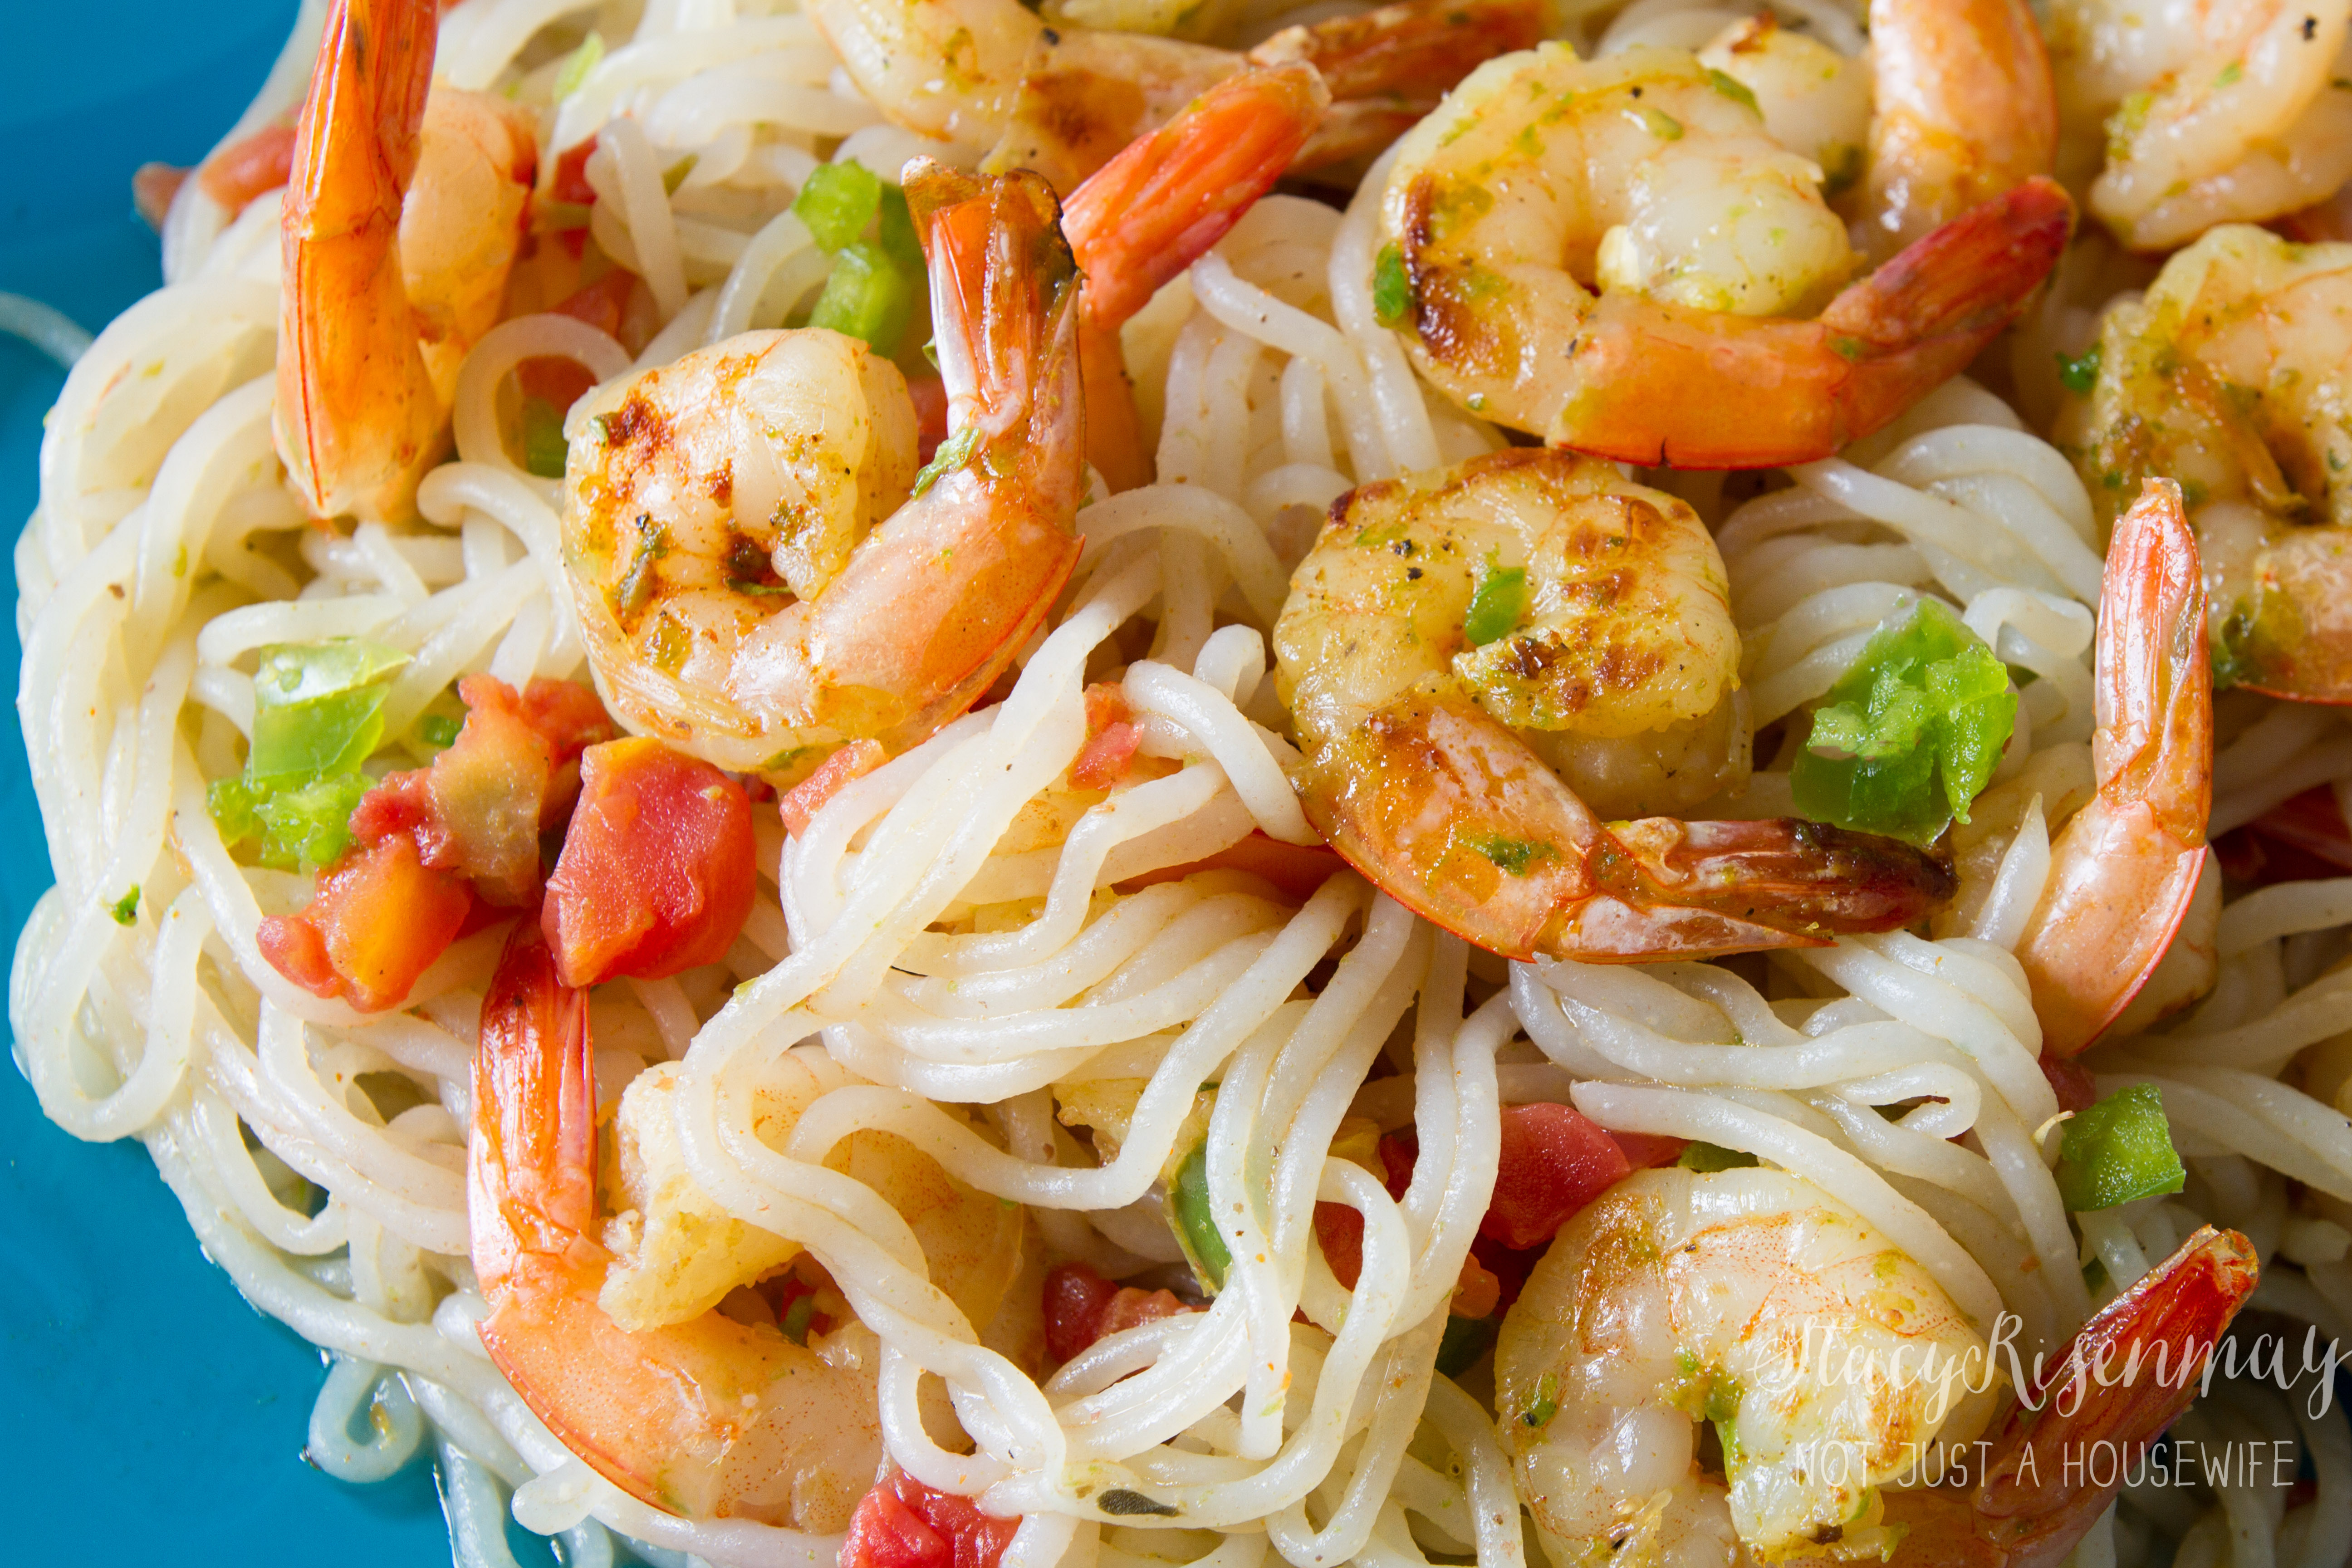 Spicy Garlic Lime Shrimp | Not JUST A Housewife